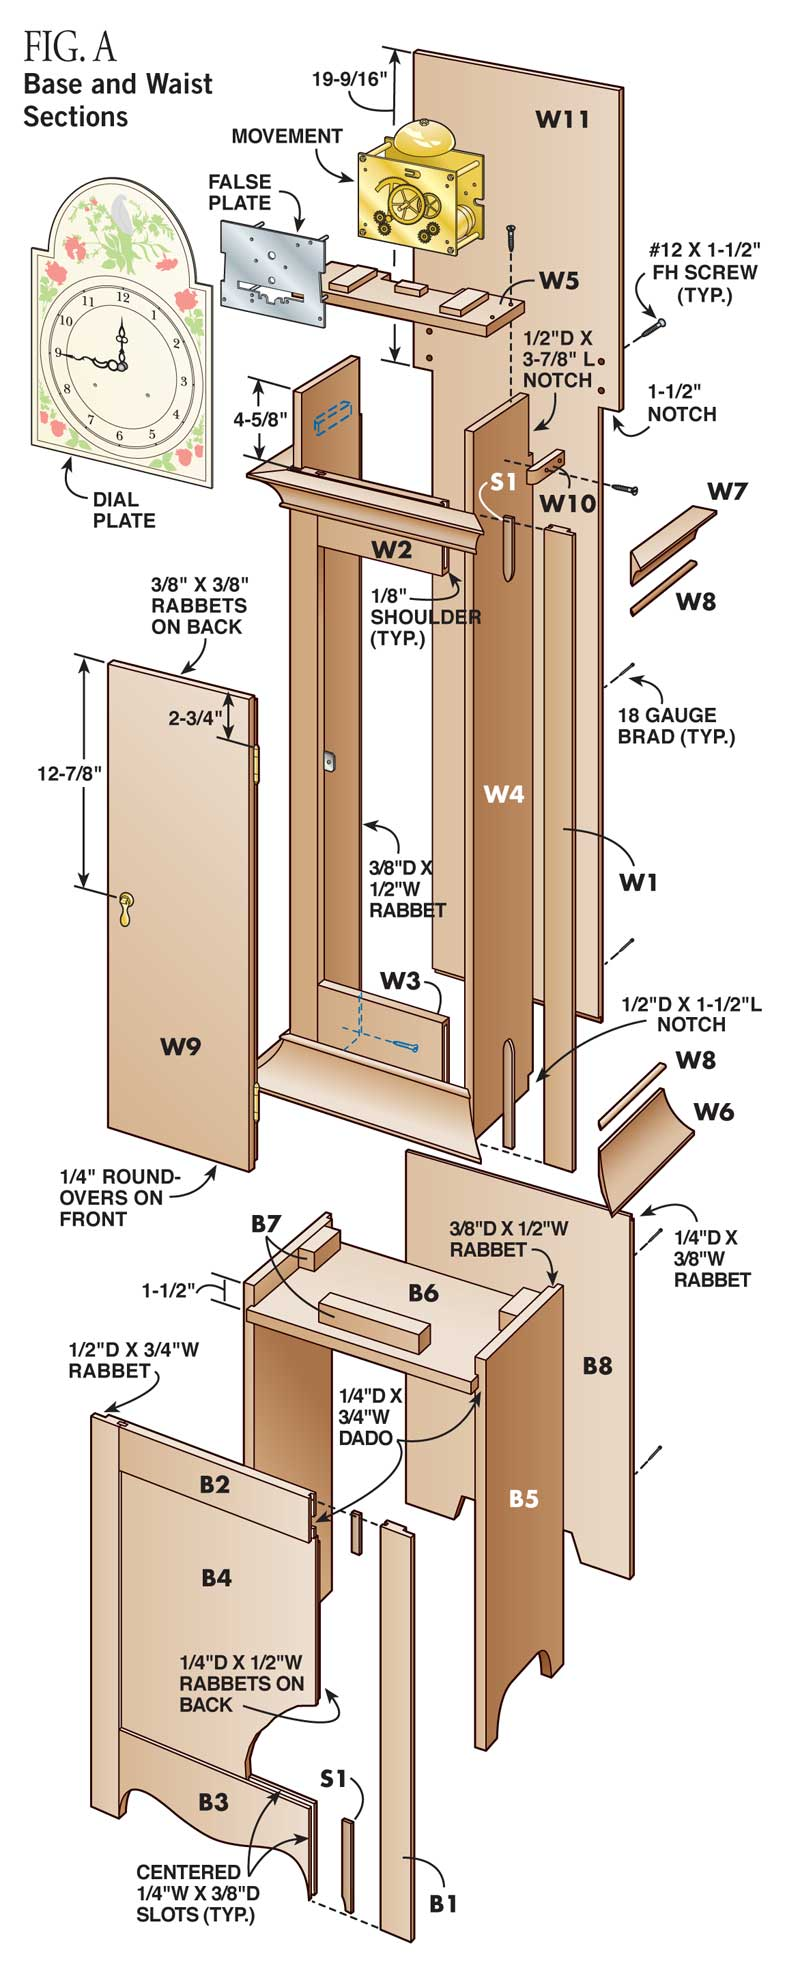 How to make a grandfather clock diy standing clock plans fig a base and waist sections malvernweather Gallery